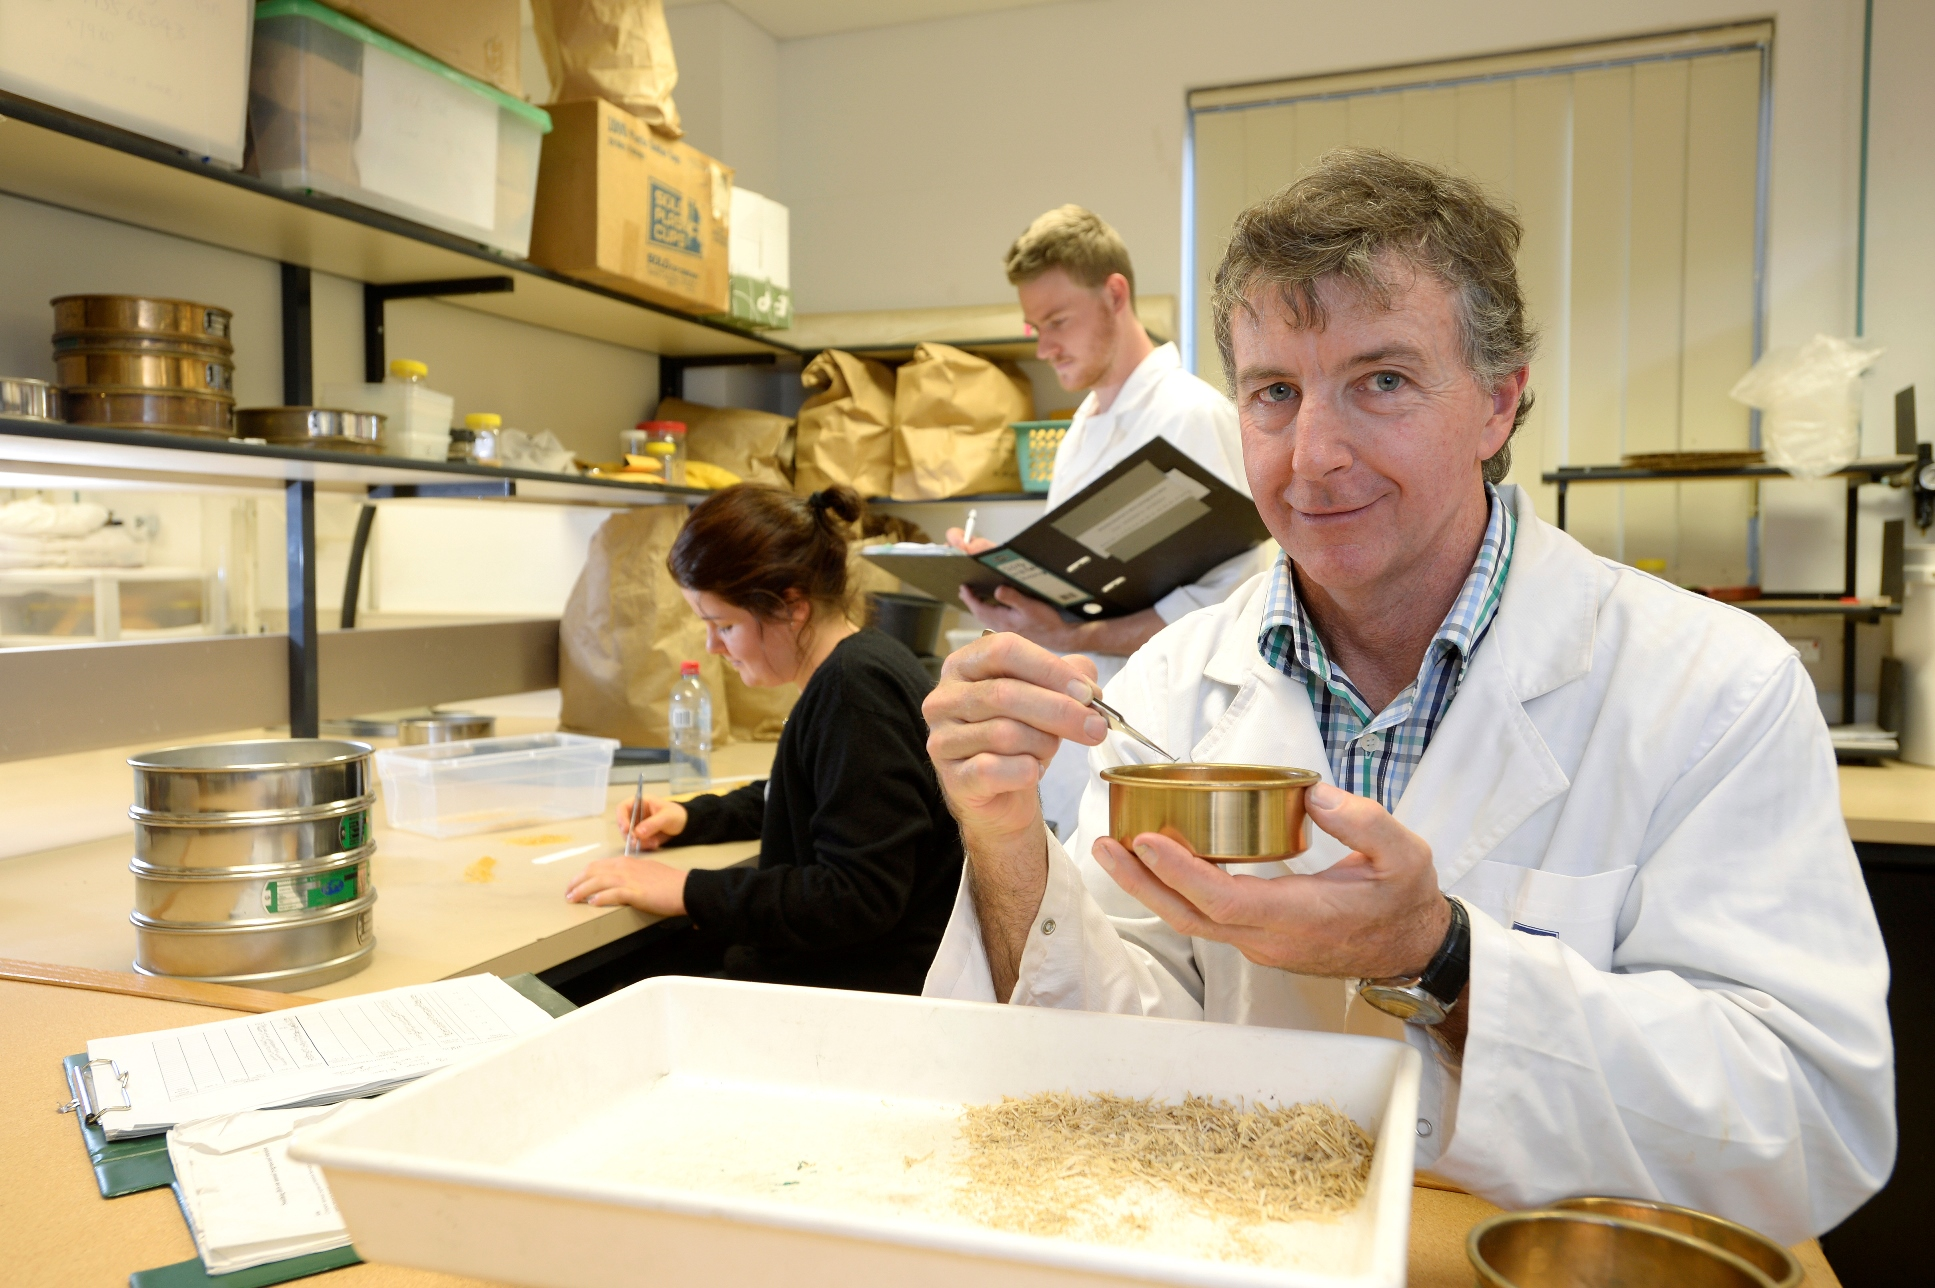 Image of Michael Walsh testing seed